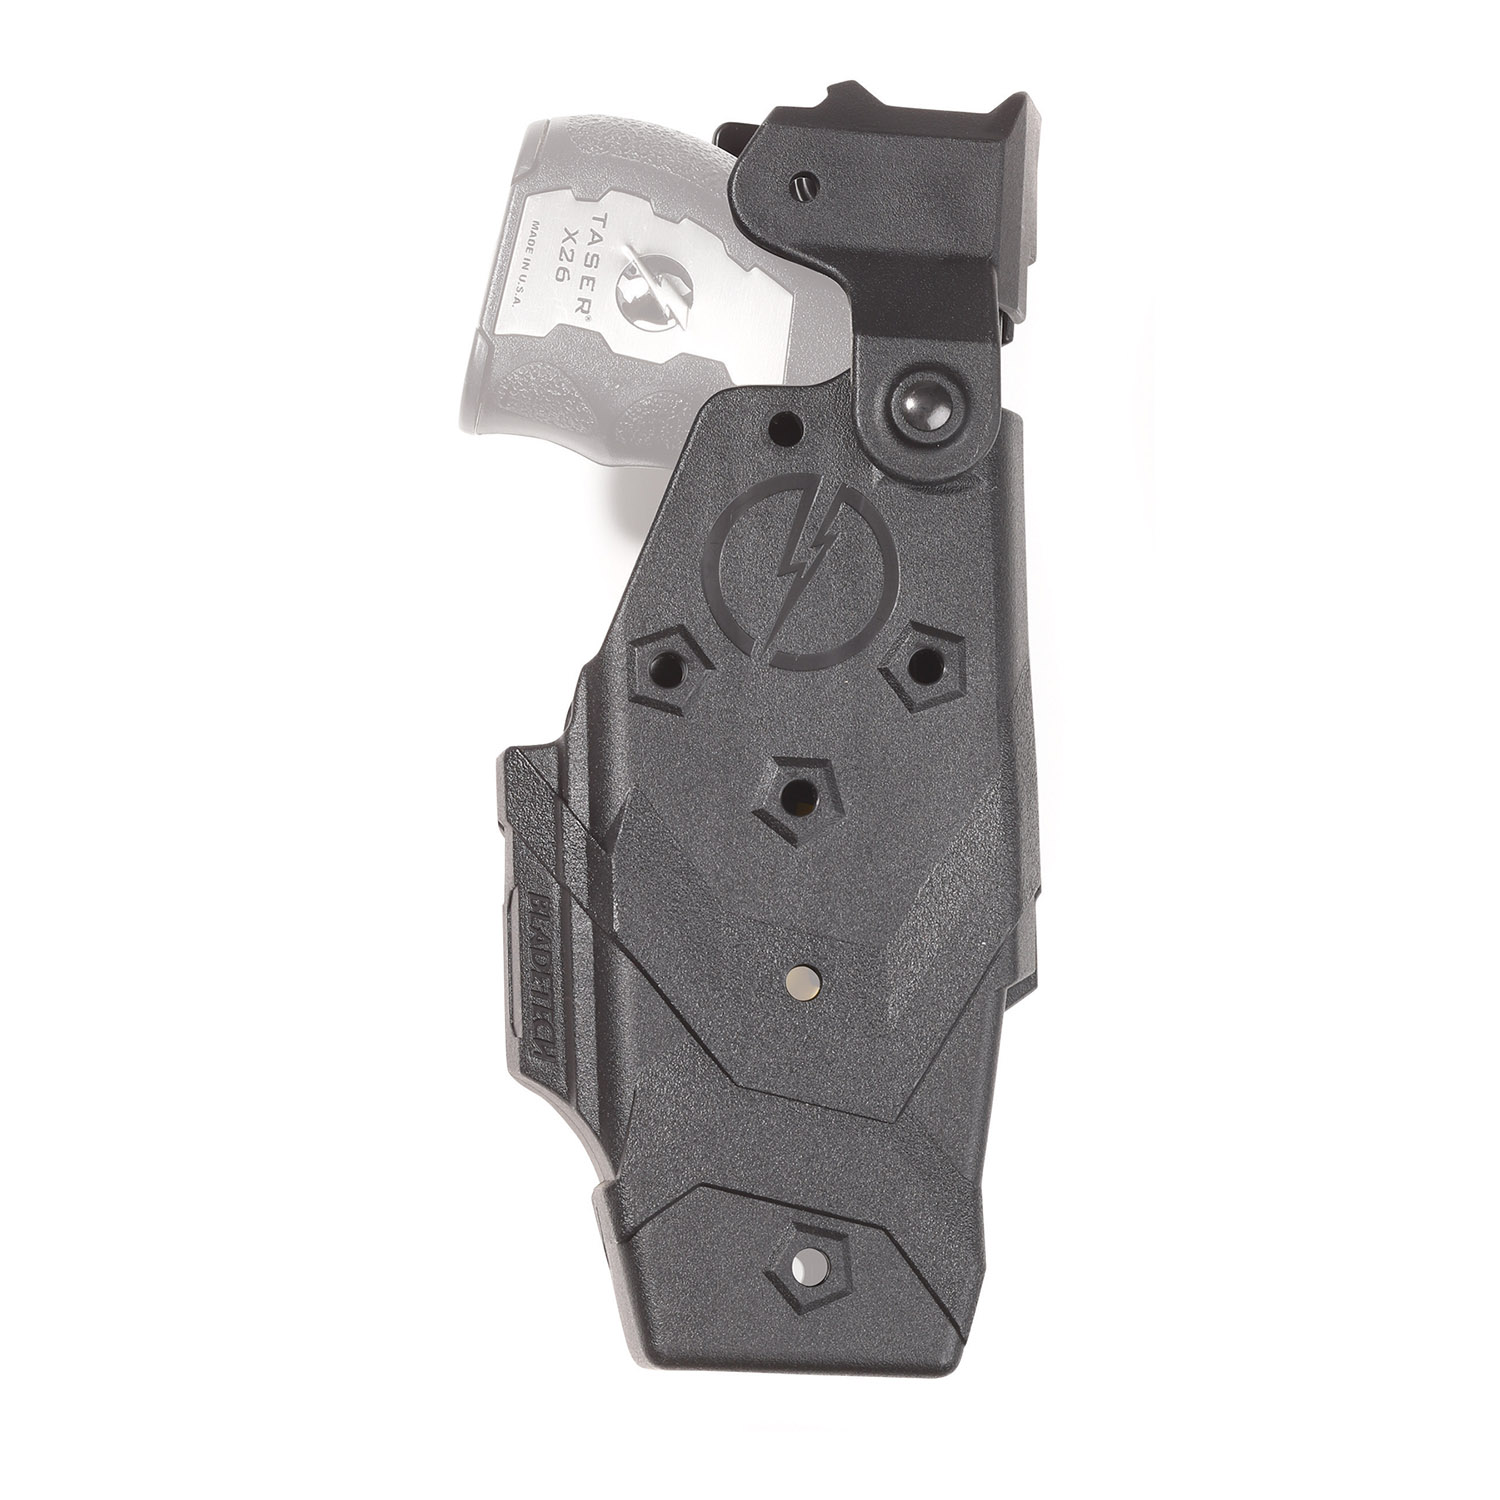 Blade-Tech Taser X26P Holster with Tek Lok Attachment